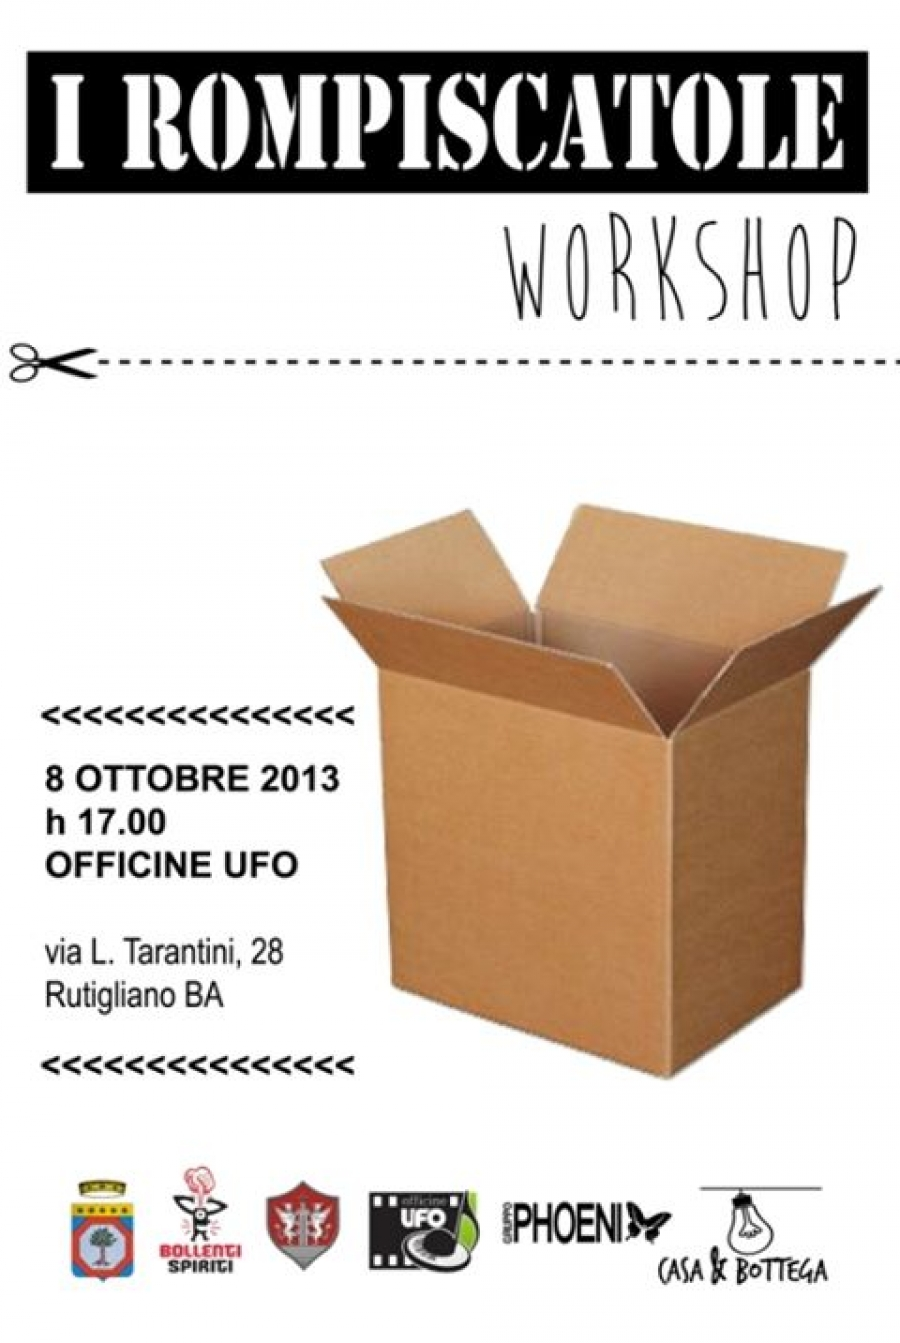 I ROMPISCATOLE WORKSHOP